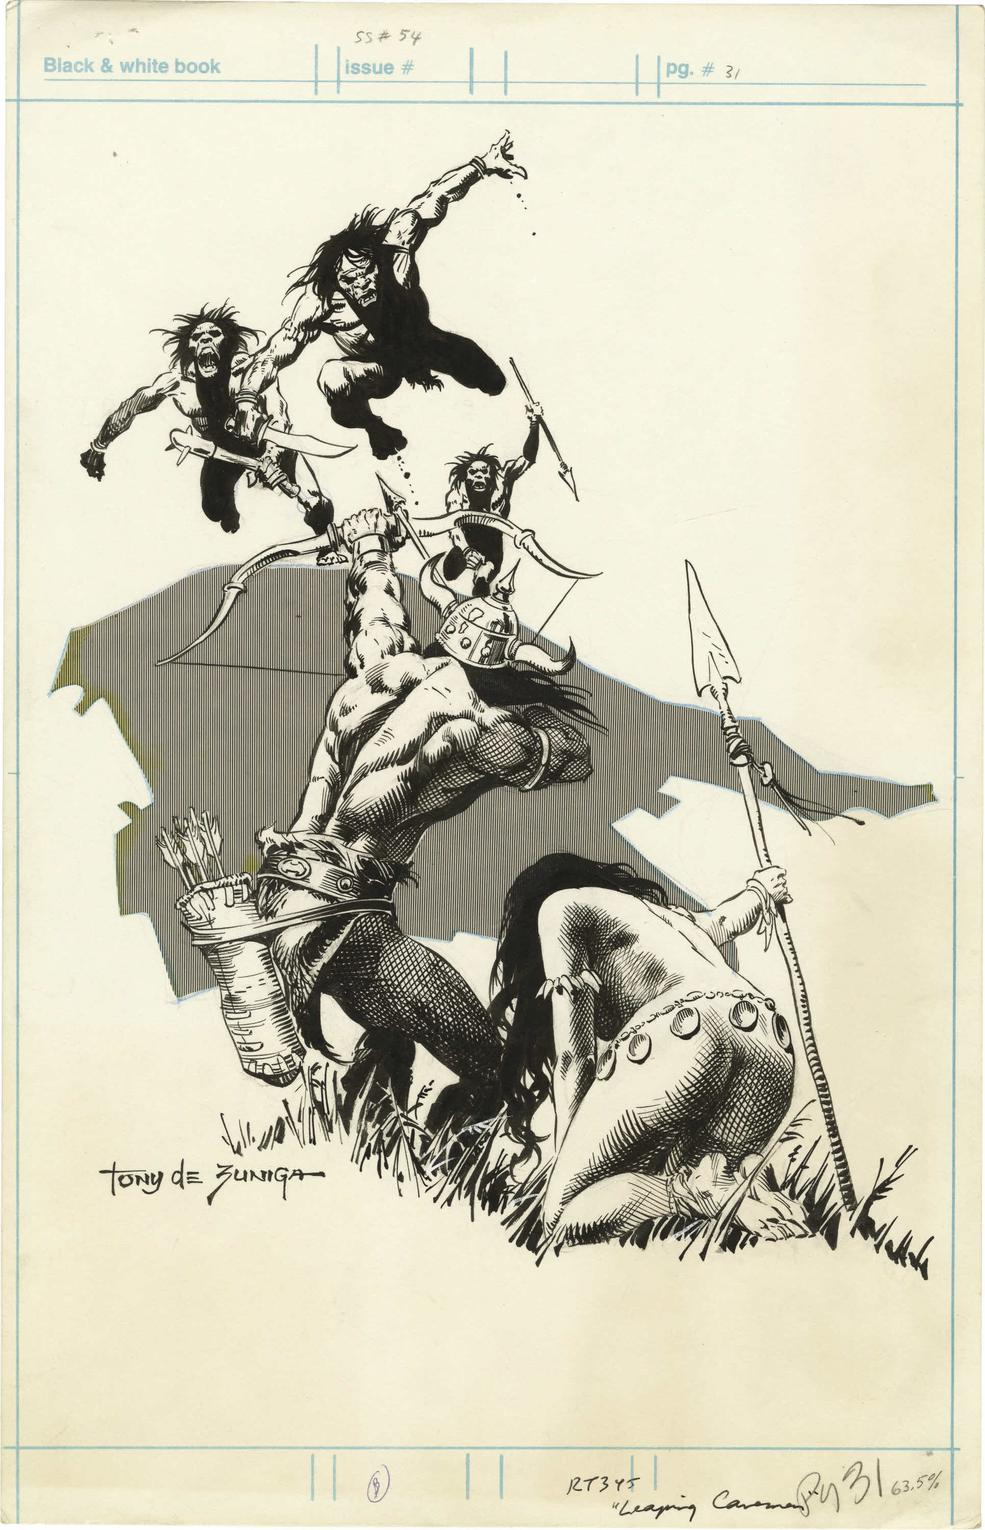 Underappreciated Inker and Artist Tony DeZuniga